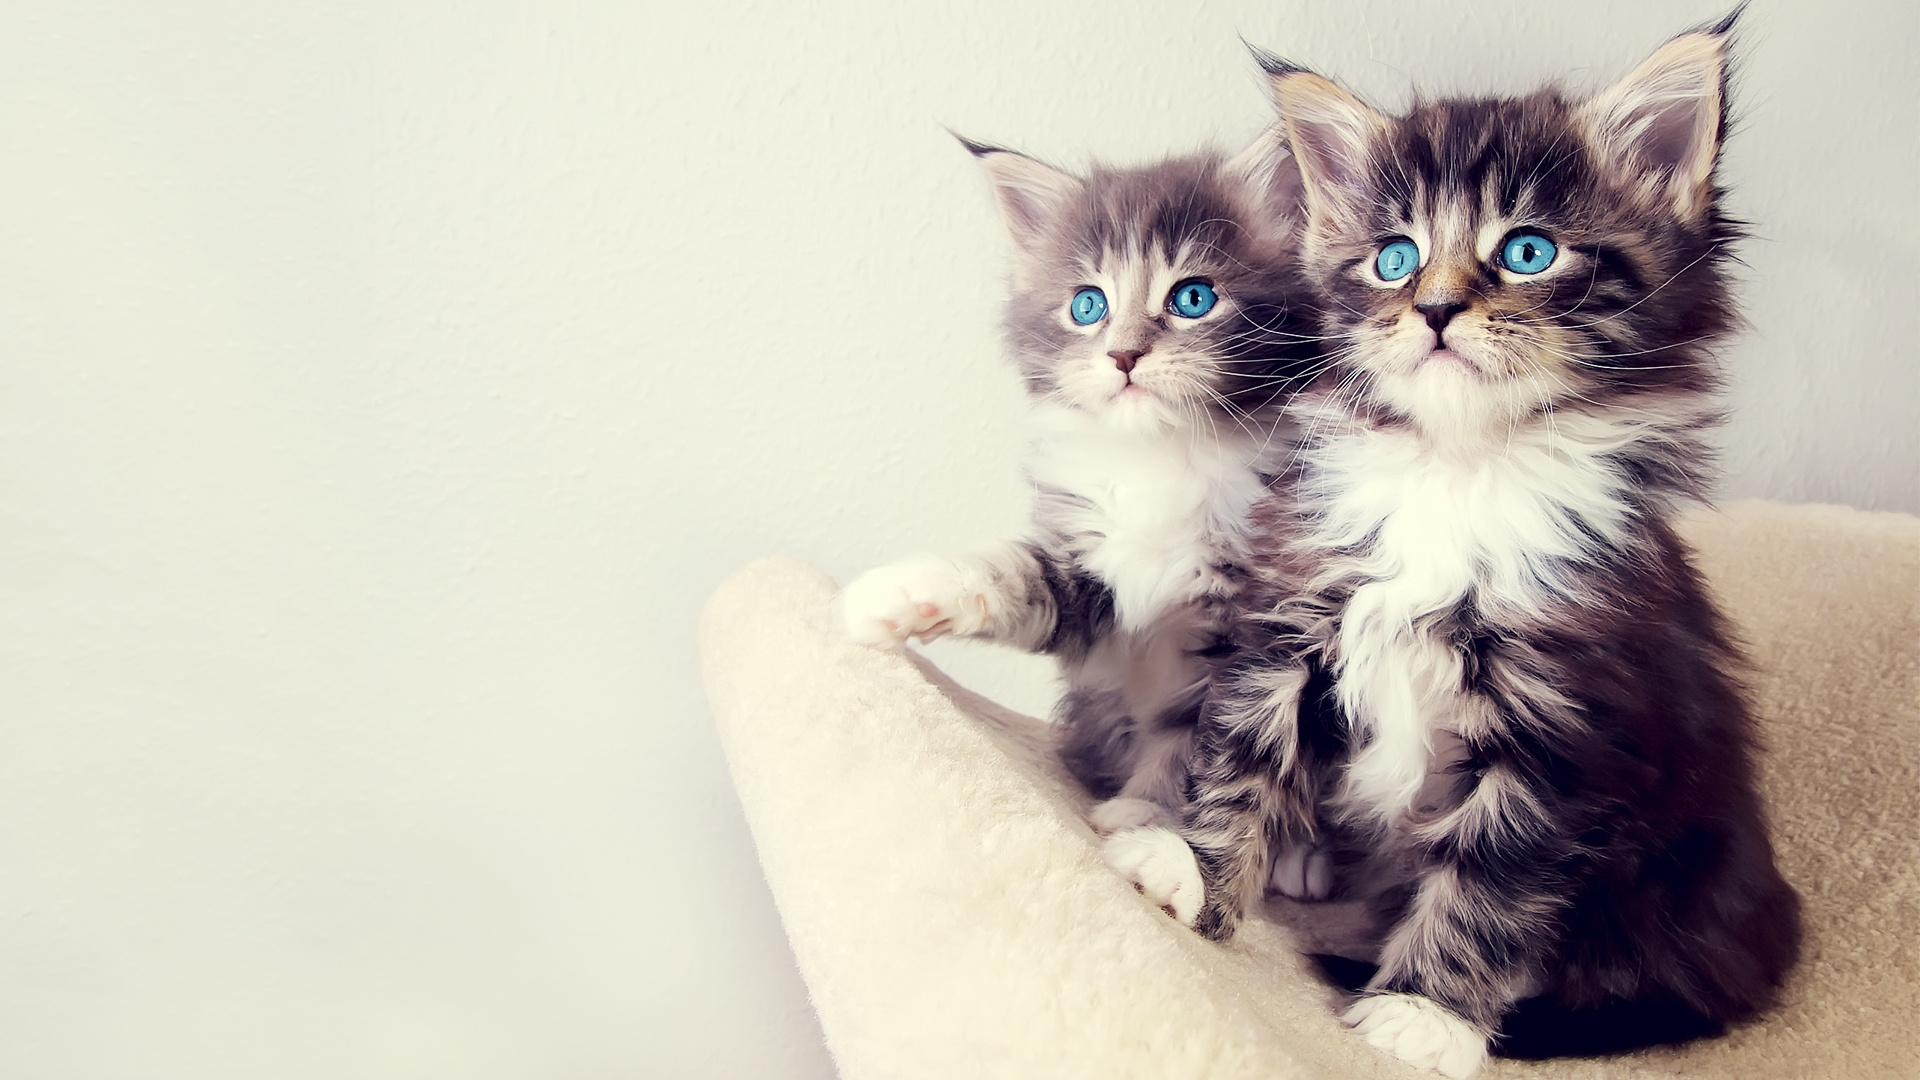 Free Wallpapers Hd Wallpapers Desktop Wallpapers Two Cute Kittens